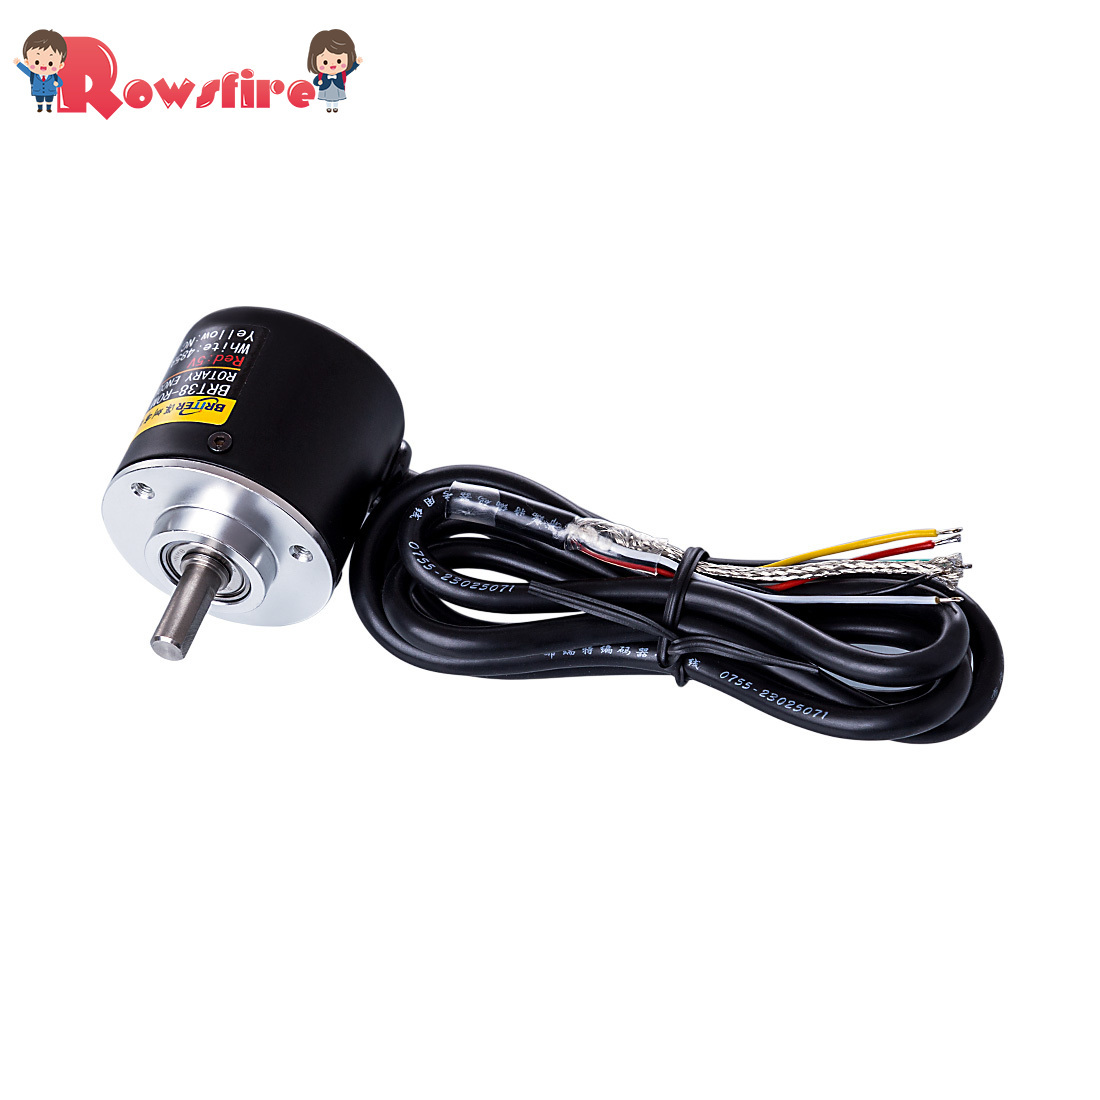 New Arrival 1 Pcs 1024P Absolute Value Encoder With RS485 Interface With High Quality For BRT Encode